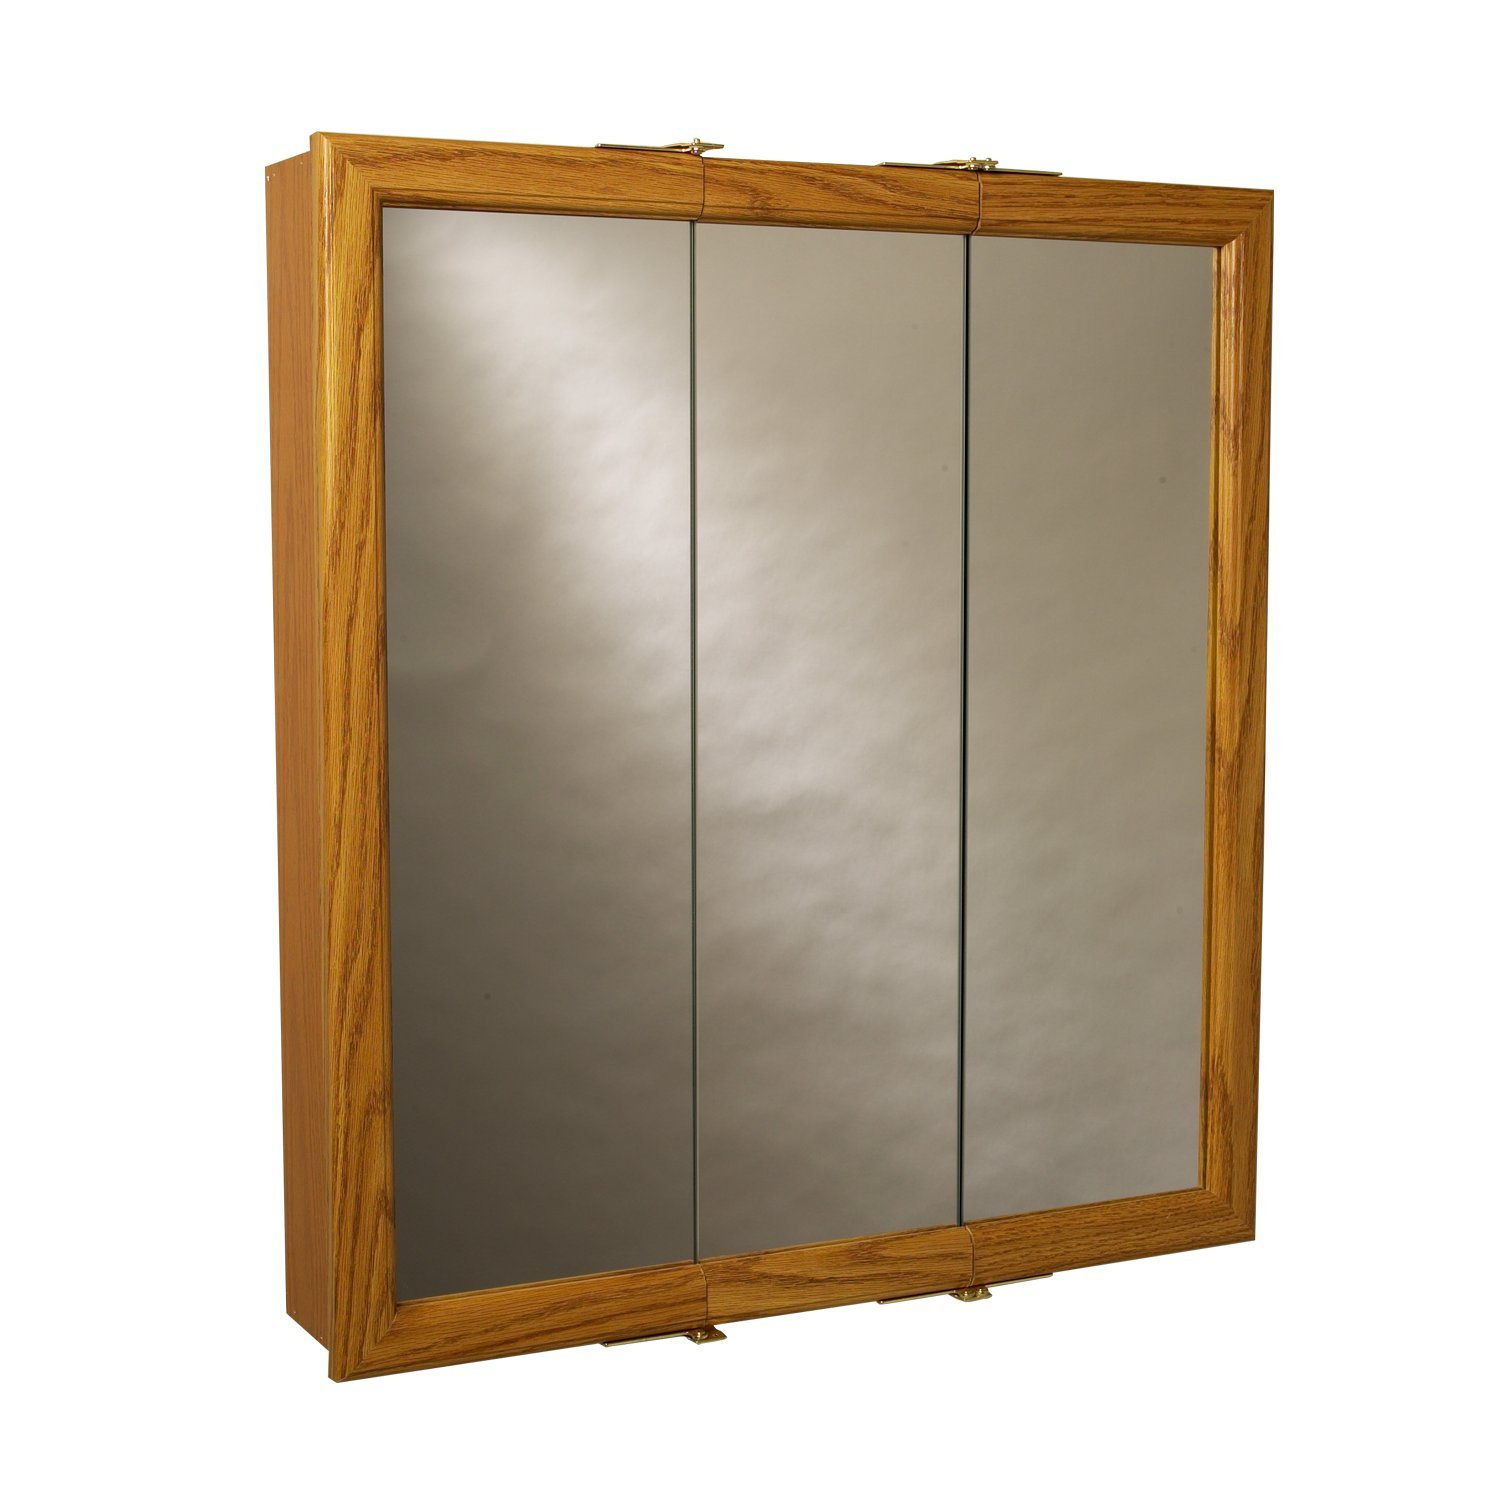 Zenith Bathroom Cabinets: Zenith Products K30 Wood Tri-View Medicine Cabinet